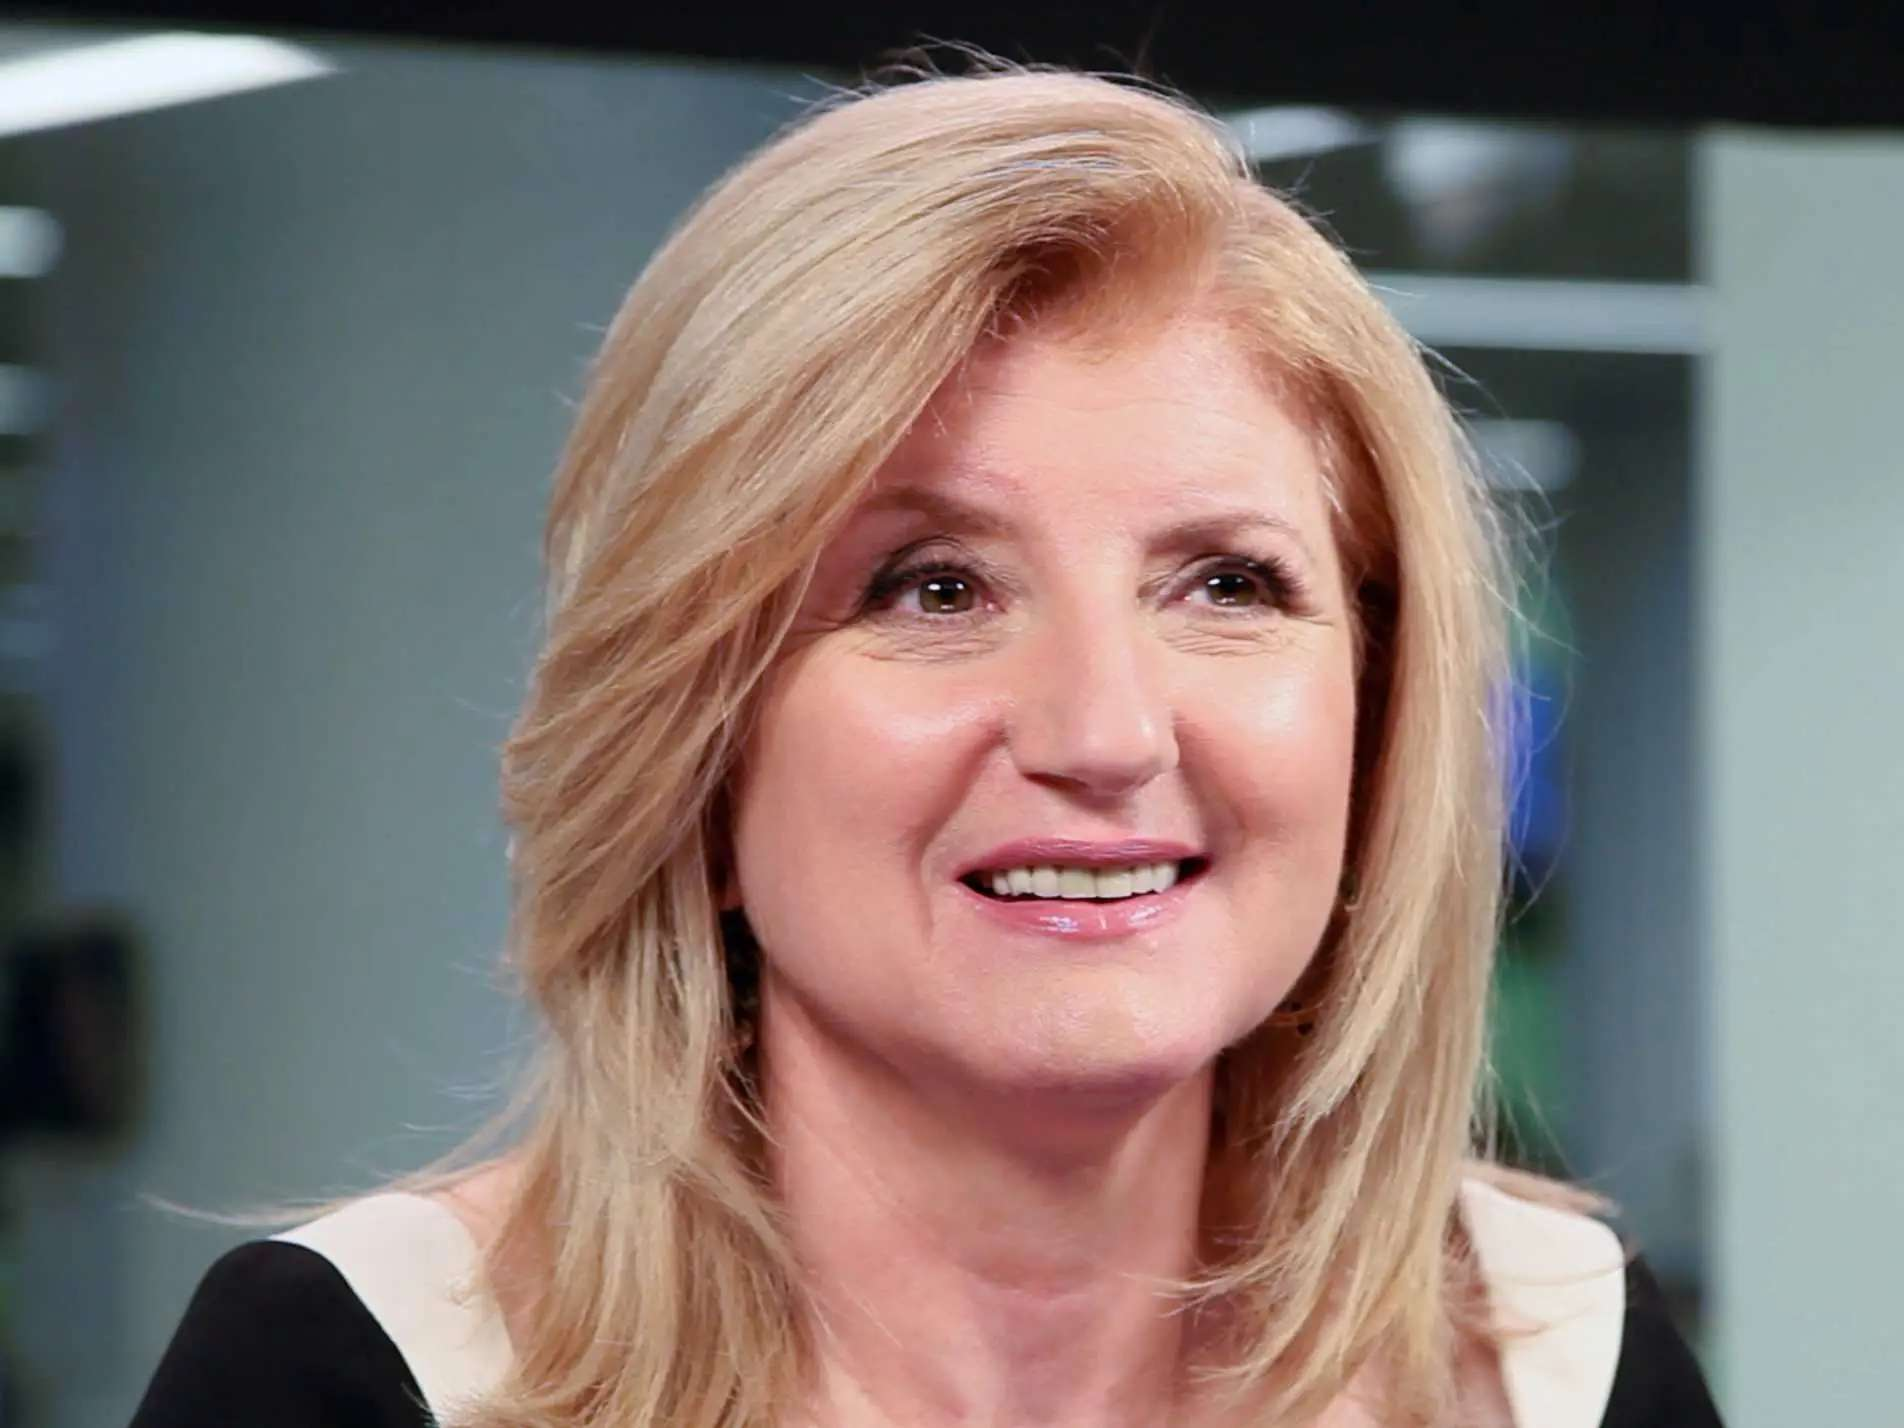 Arianna Huffington dislikes people who brag about how busy they are.